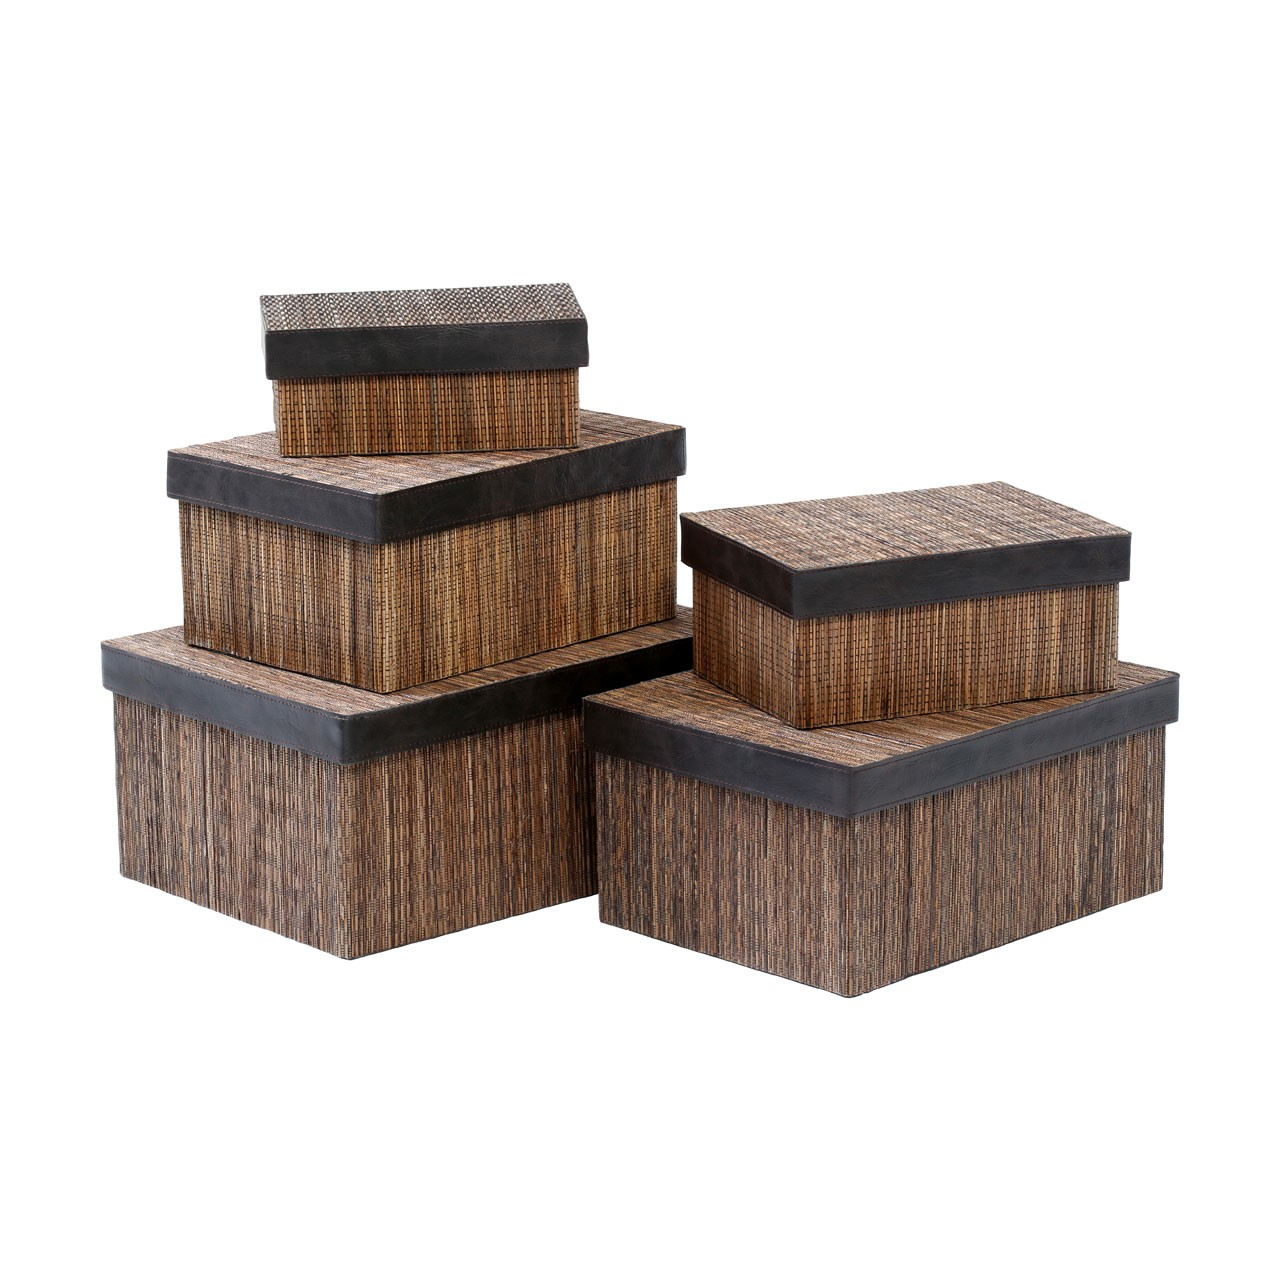 Prime Furnishing Coconut Stick Storage Boxes, Natural - Set Of 5